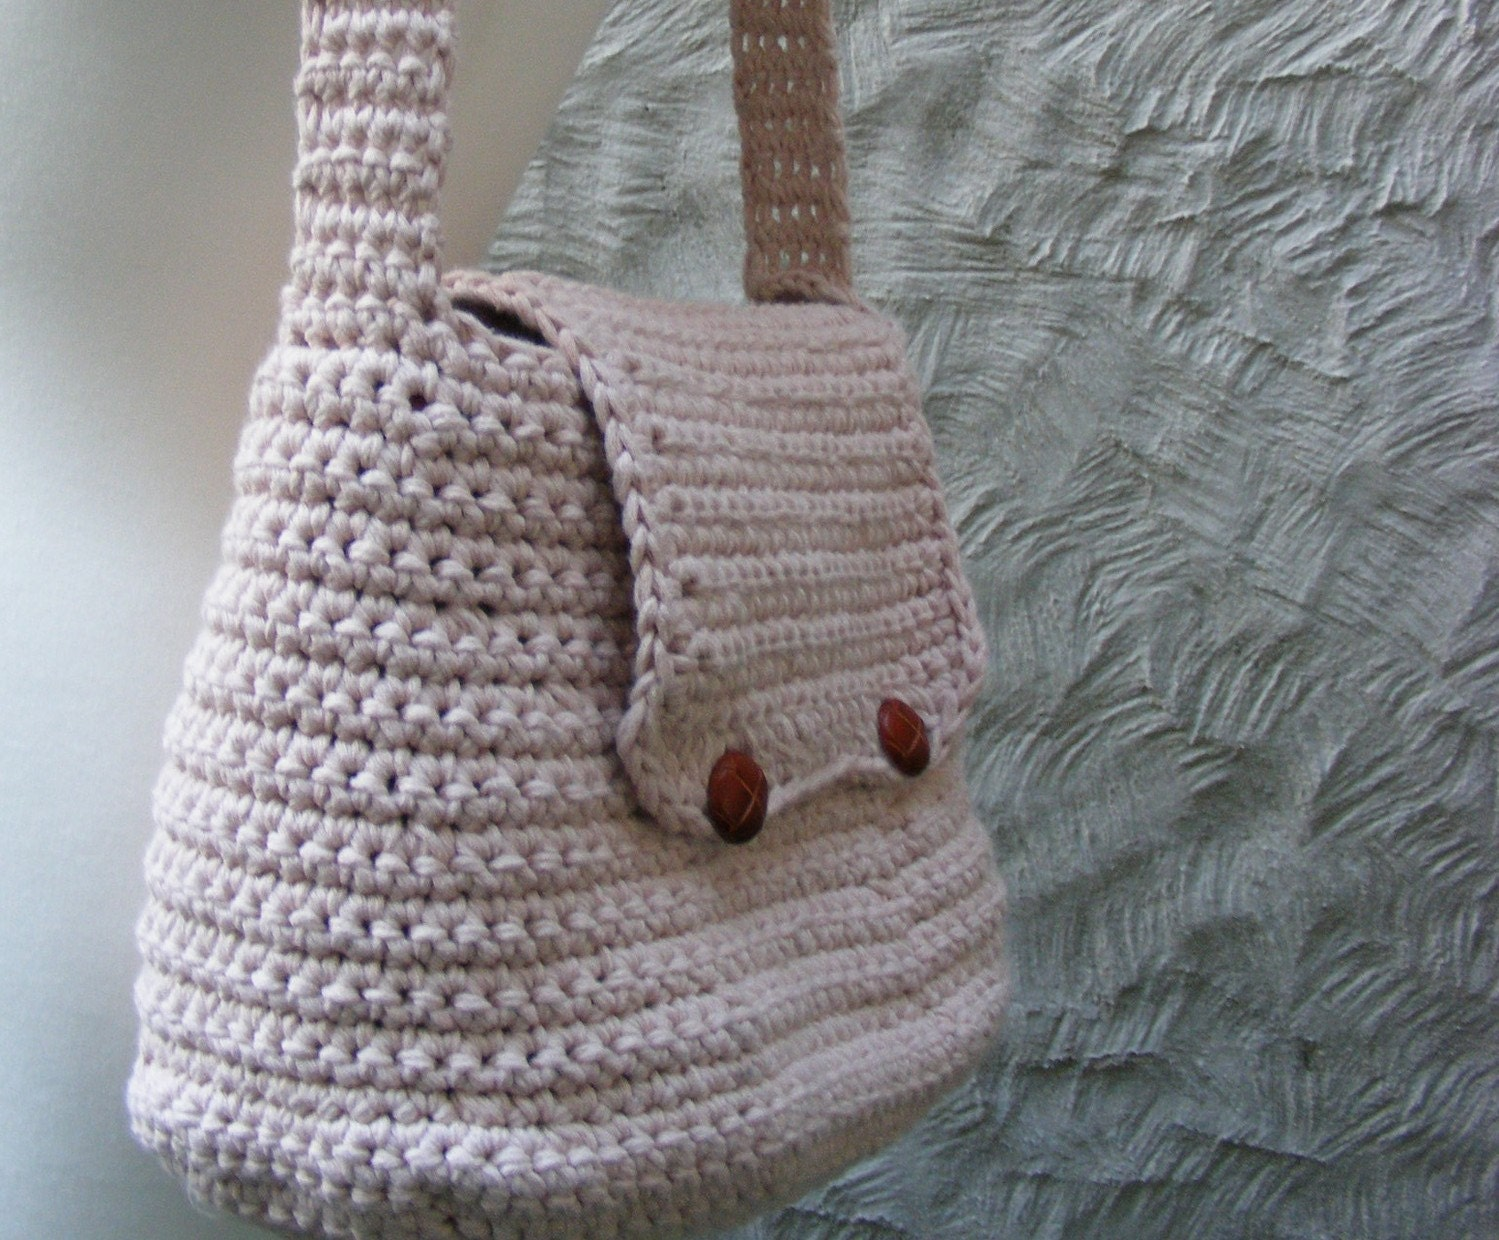 Crochet Simple Bag : Crochet Patterns For Beginners Bag Patterns Crochet Hobo Bag